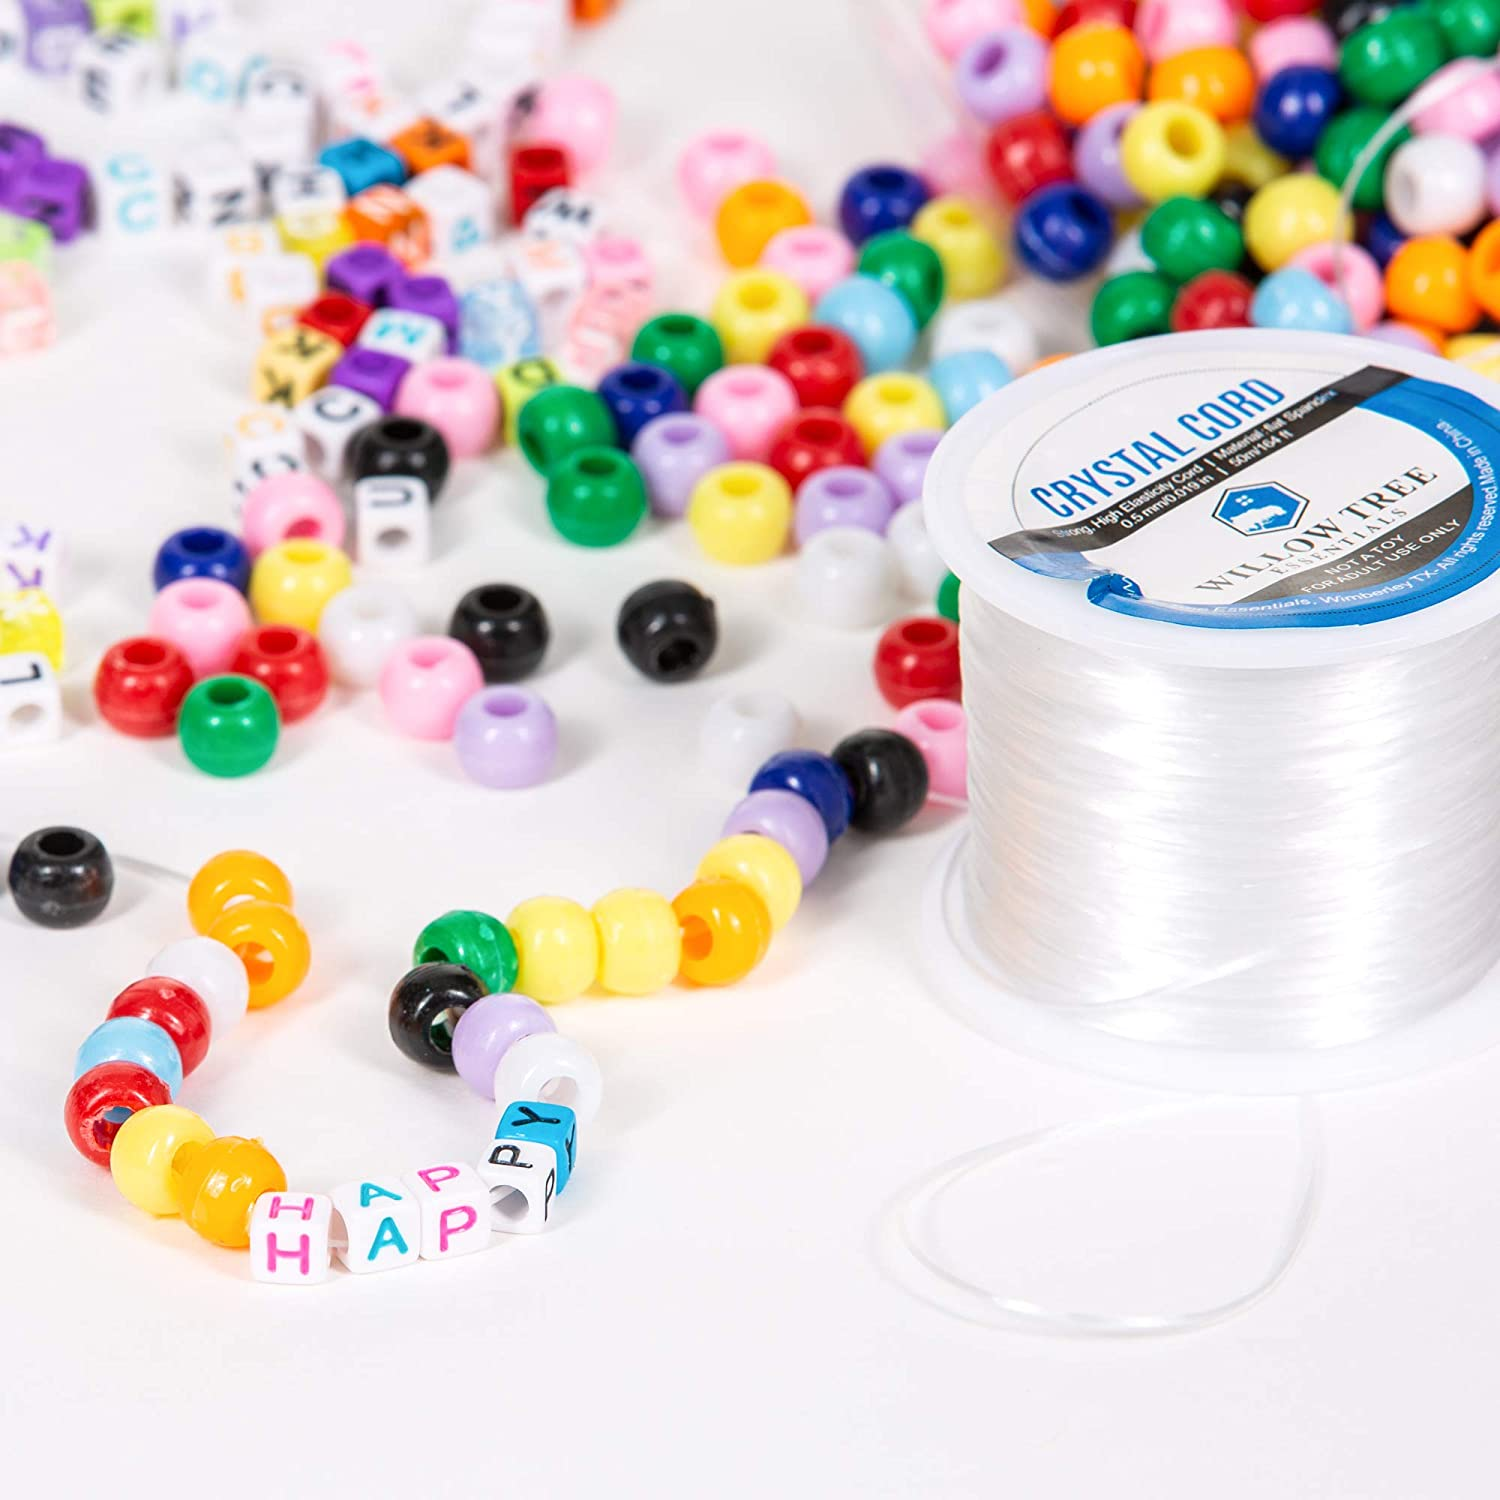 Quefe 1500 Pcs Assorted Acrylic Plastic Beads Containing 4 Types Letter Beads 1 Set UV Beads with 50 Meters of Flat Round Thread for Making Jewelry 1 Set Large Hole Beads Bracelets etc.